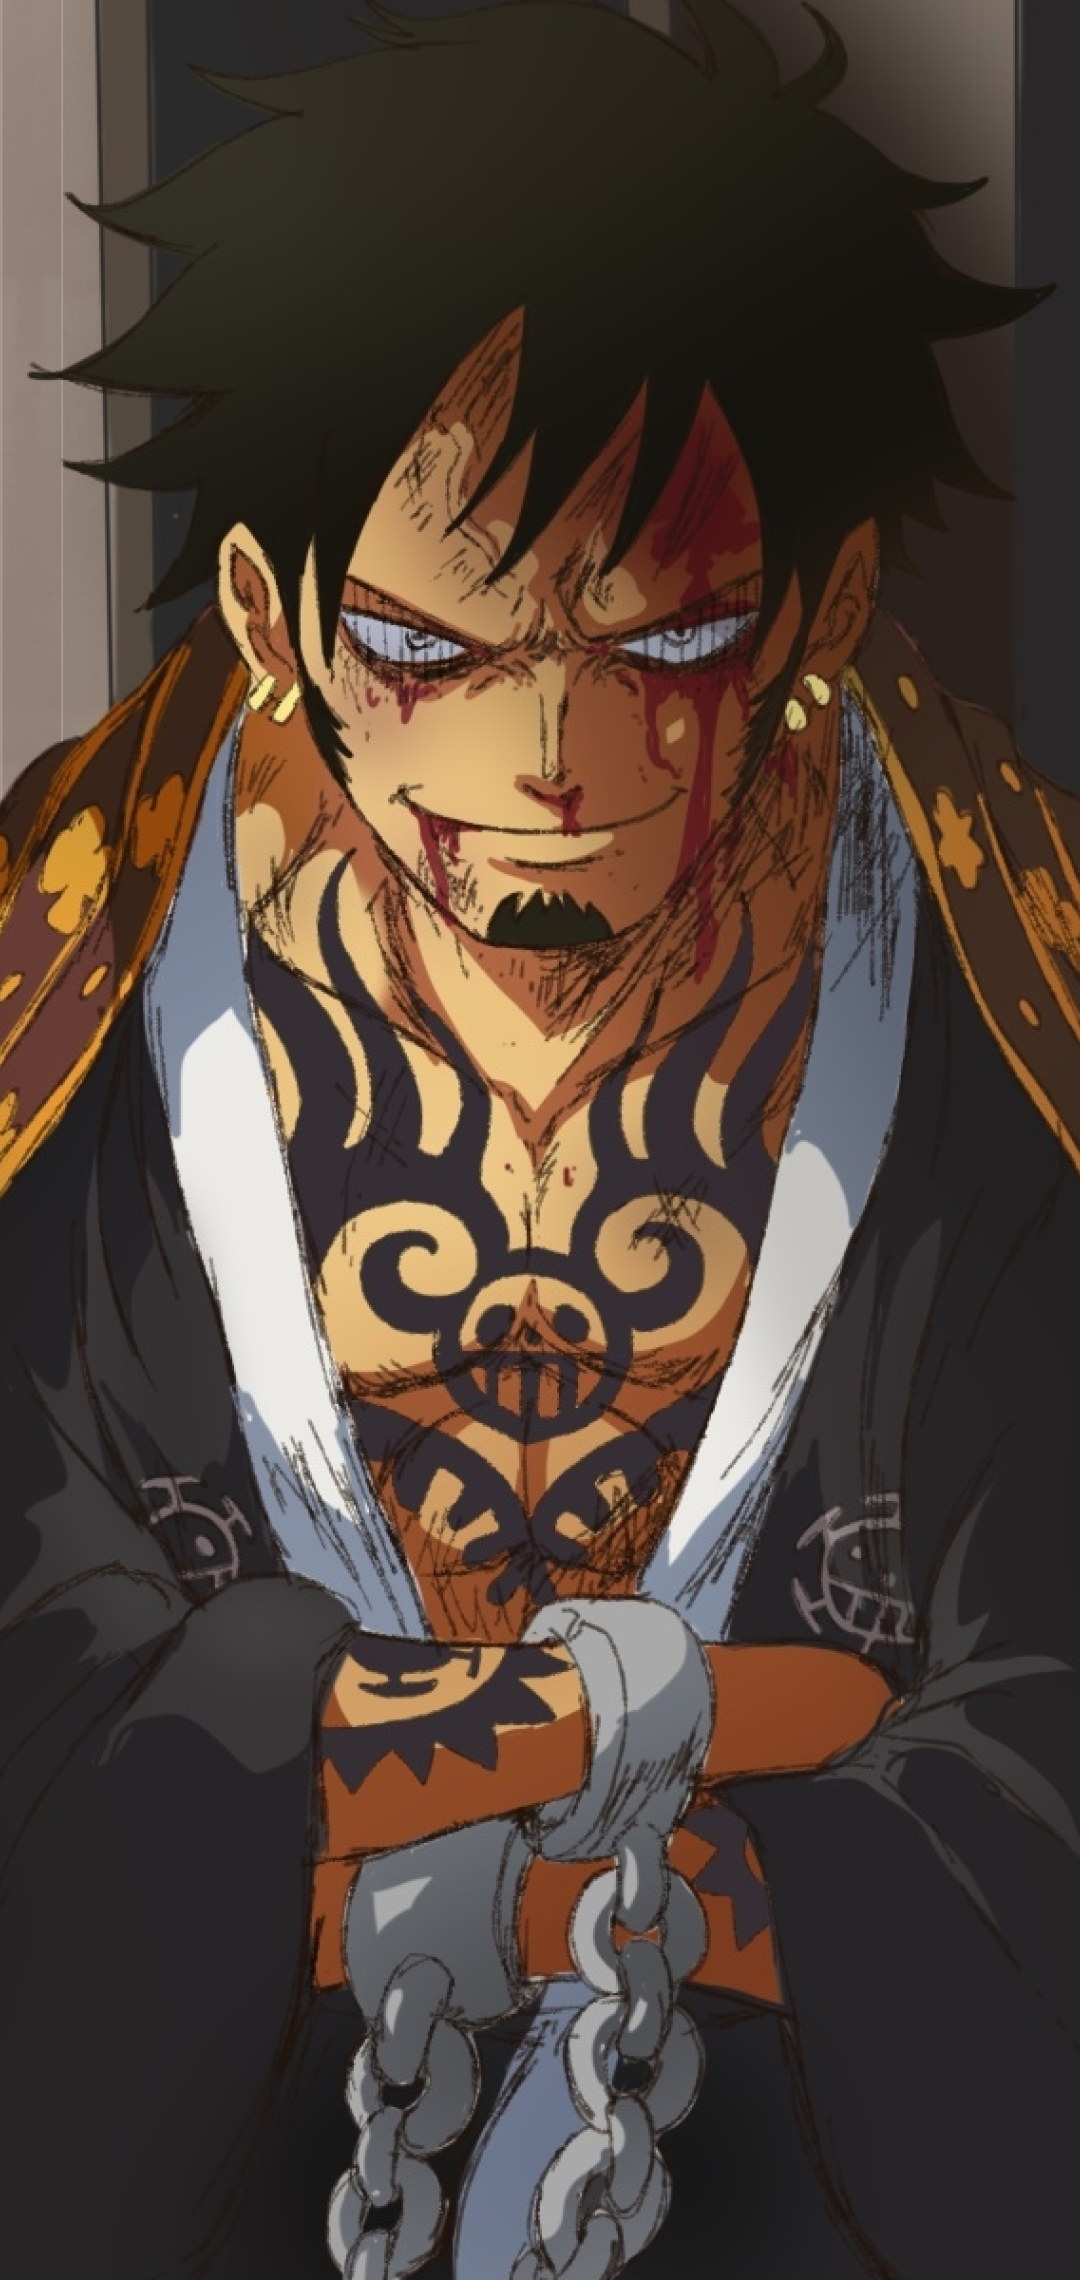 1080x2280 Trafalgar Law In One Piece One Plus 6 Huawei P20 Honor View 10 Vivo Y85 Oppo F7 Xiaomi Mi A2 Wallpaper Hd Anime 4k Wallpapers Images Photos And Background